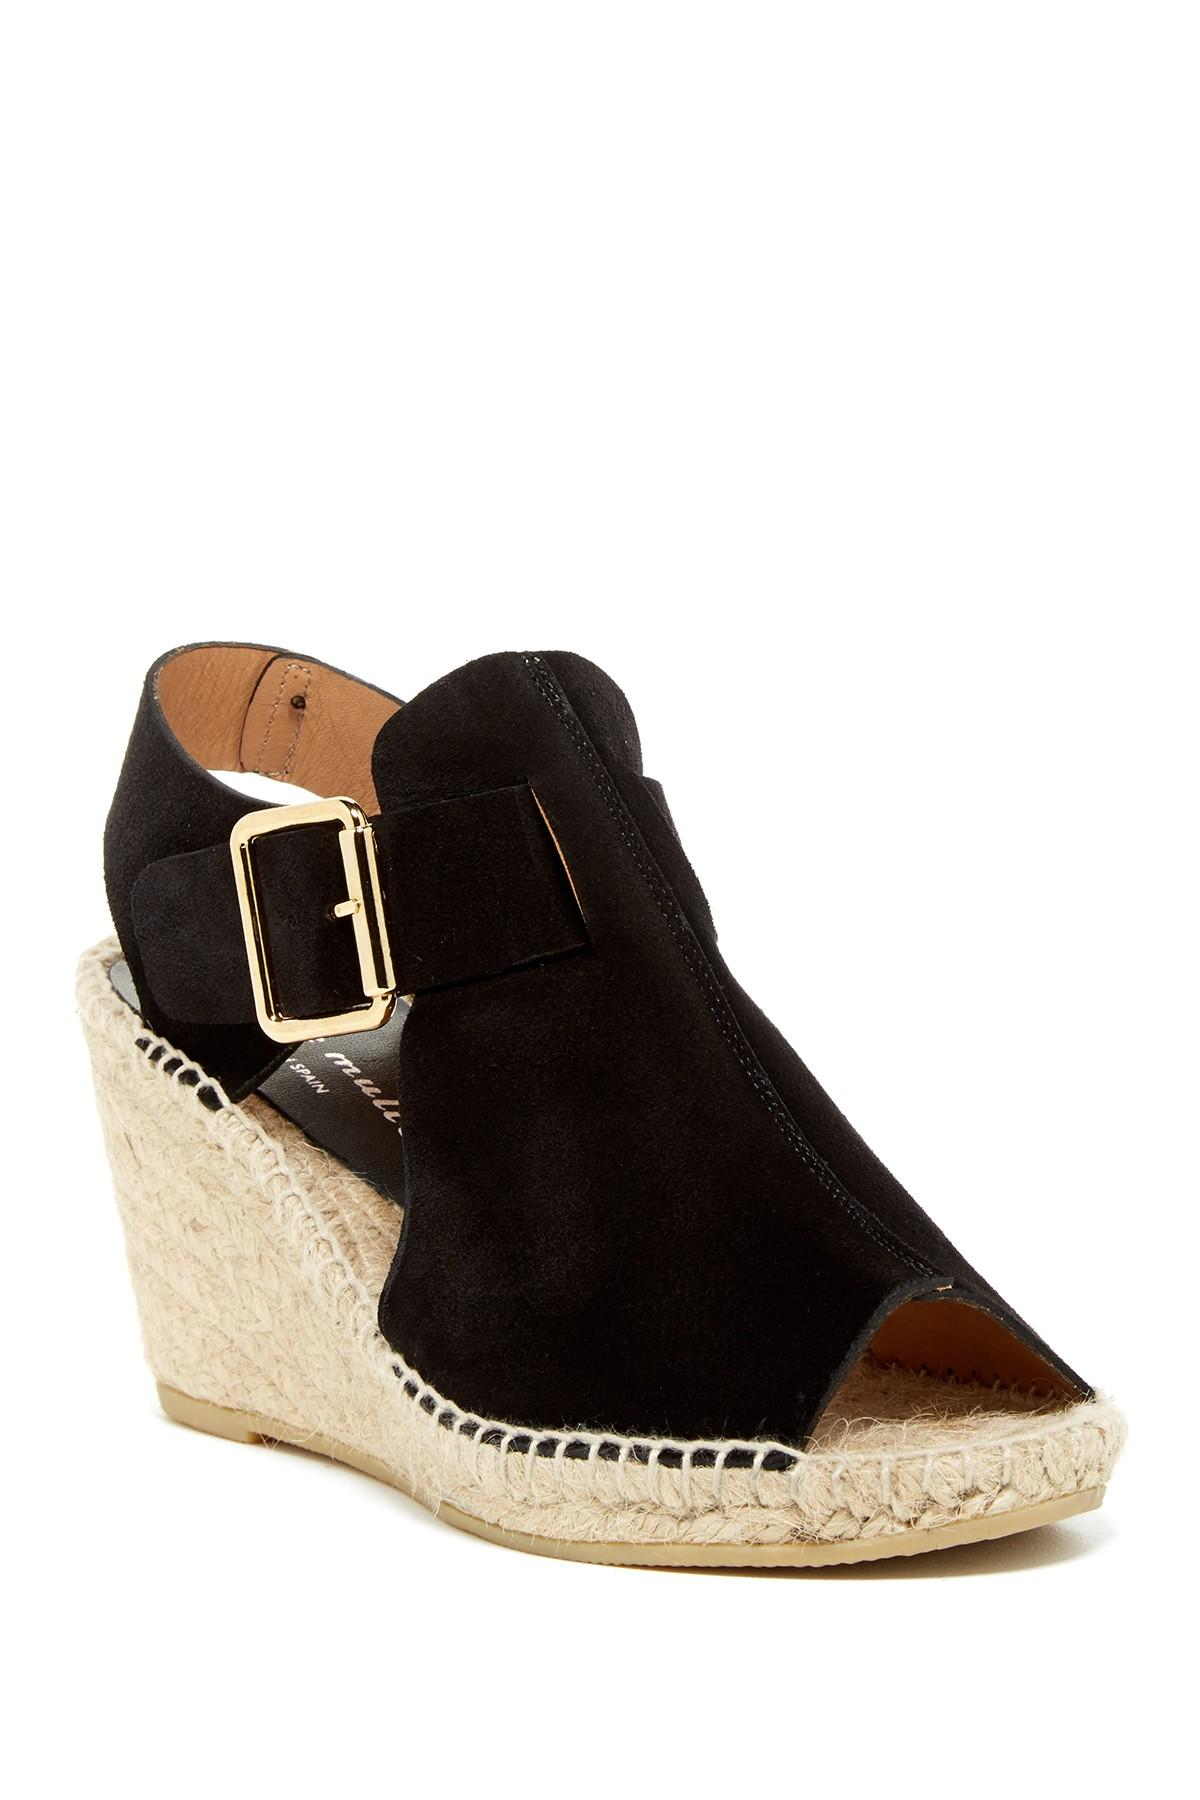 Bettye Muller Dawn Suede Espadrille Wedge Sandal In Black